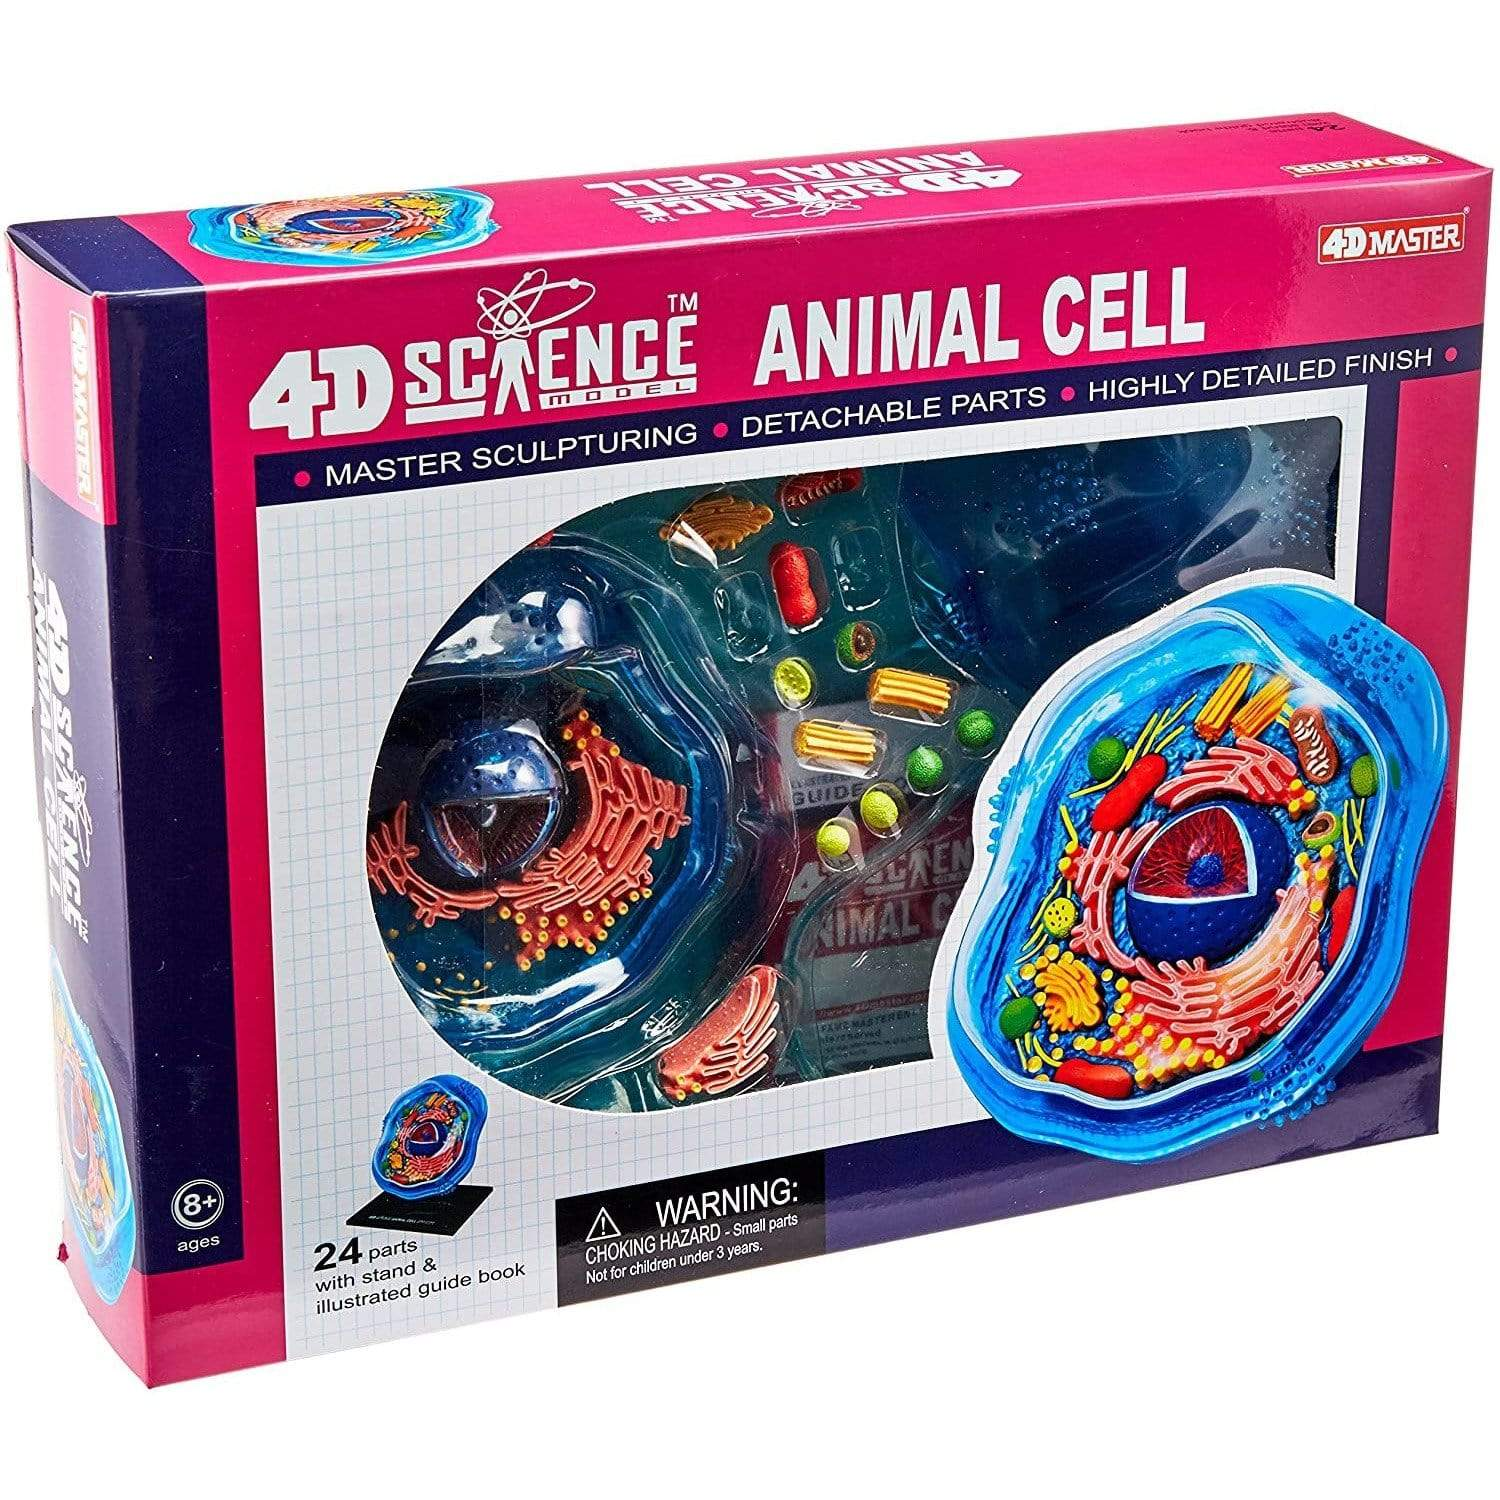 4D Vision Animal Cell Tedco Projects/Kits